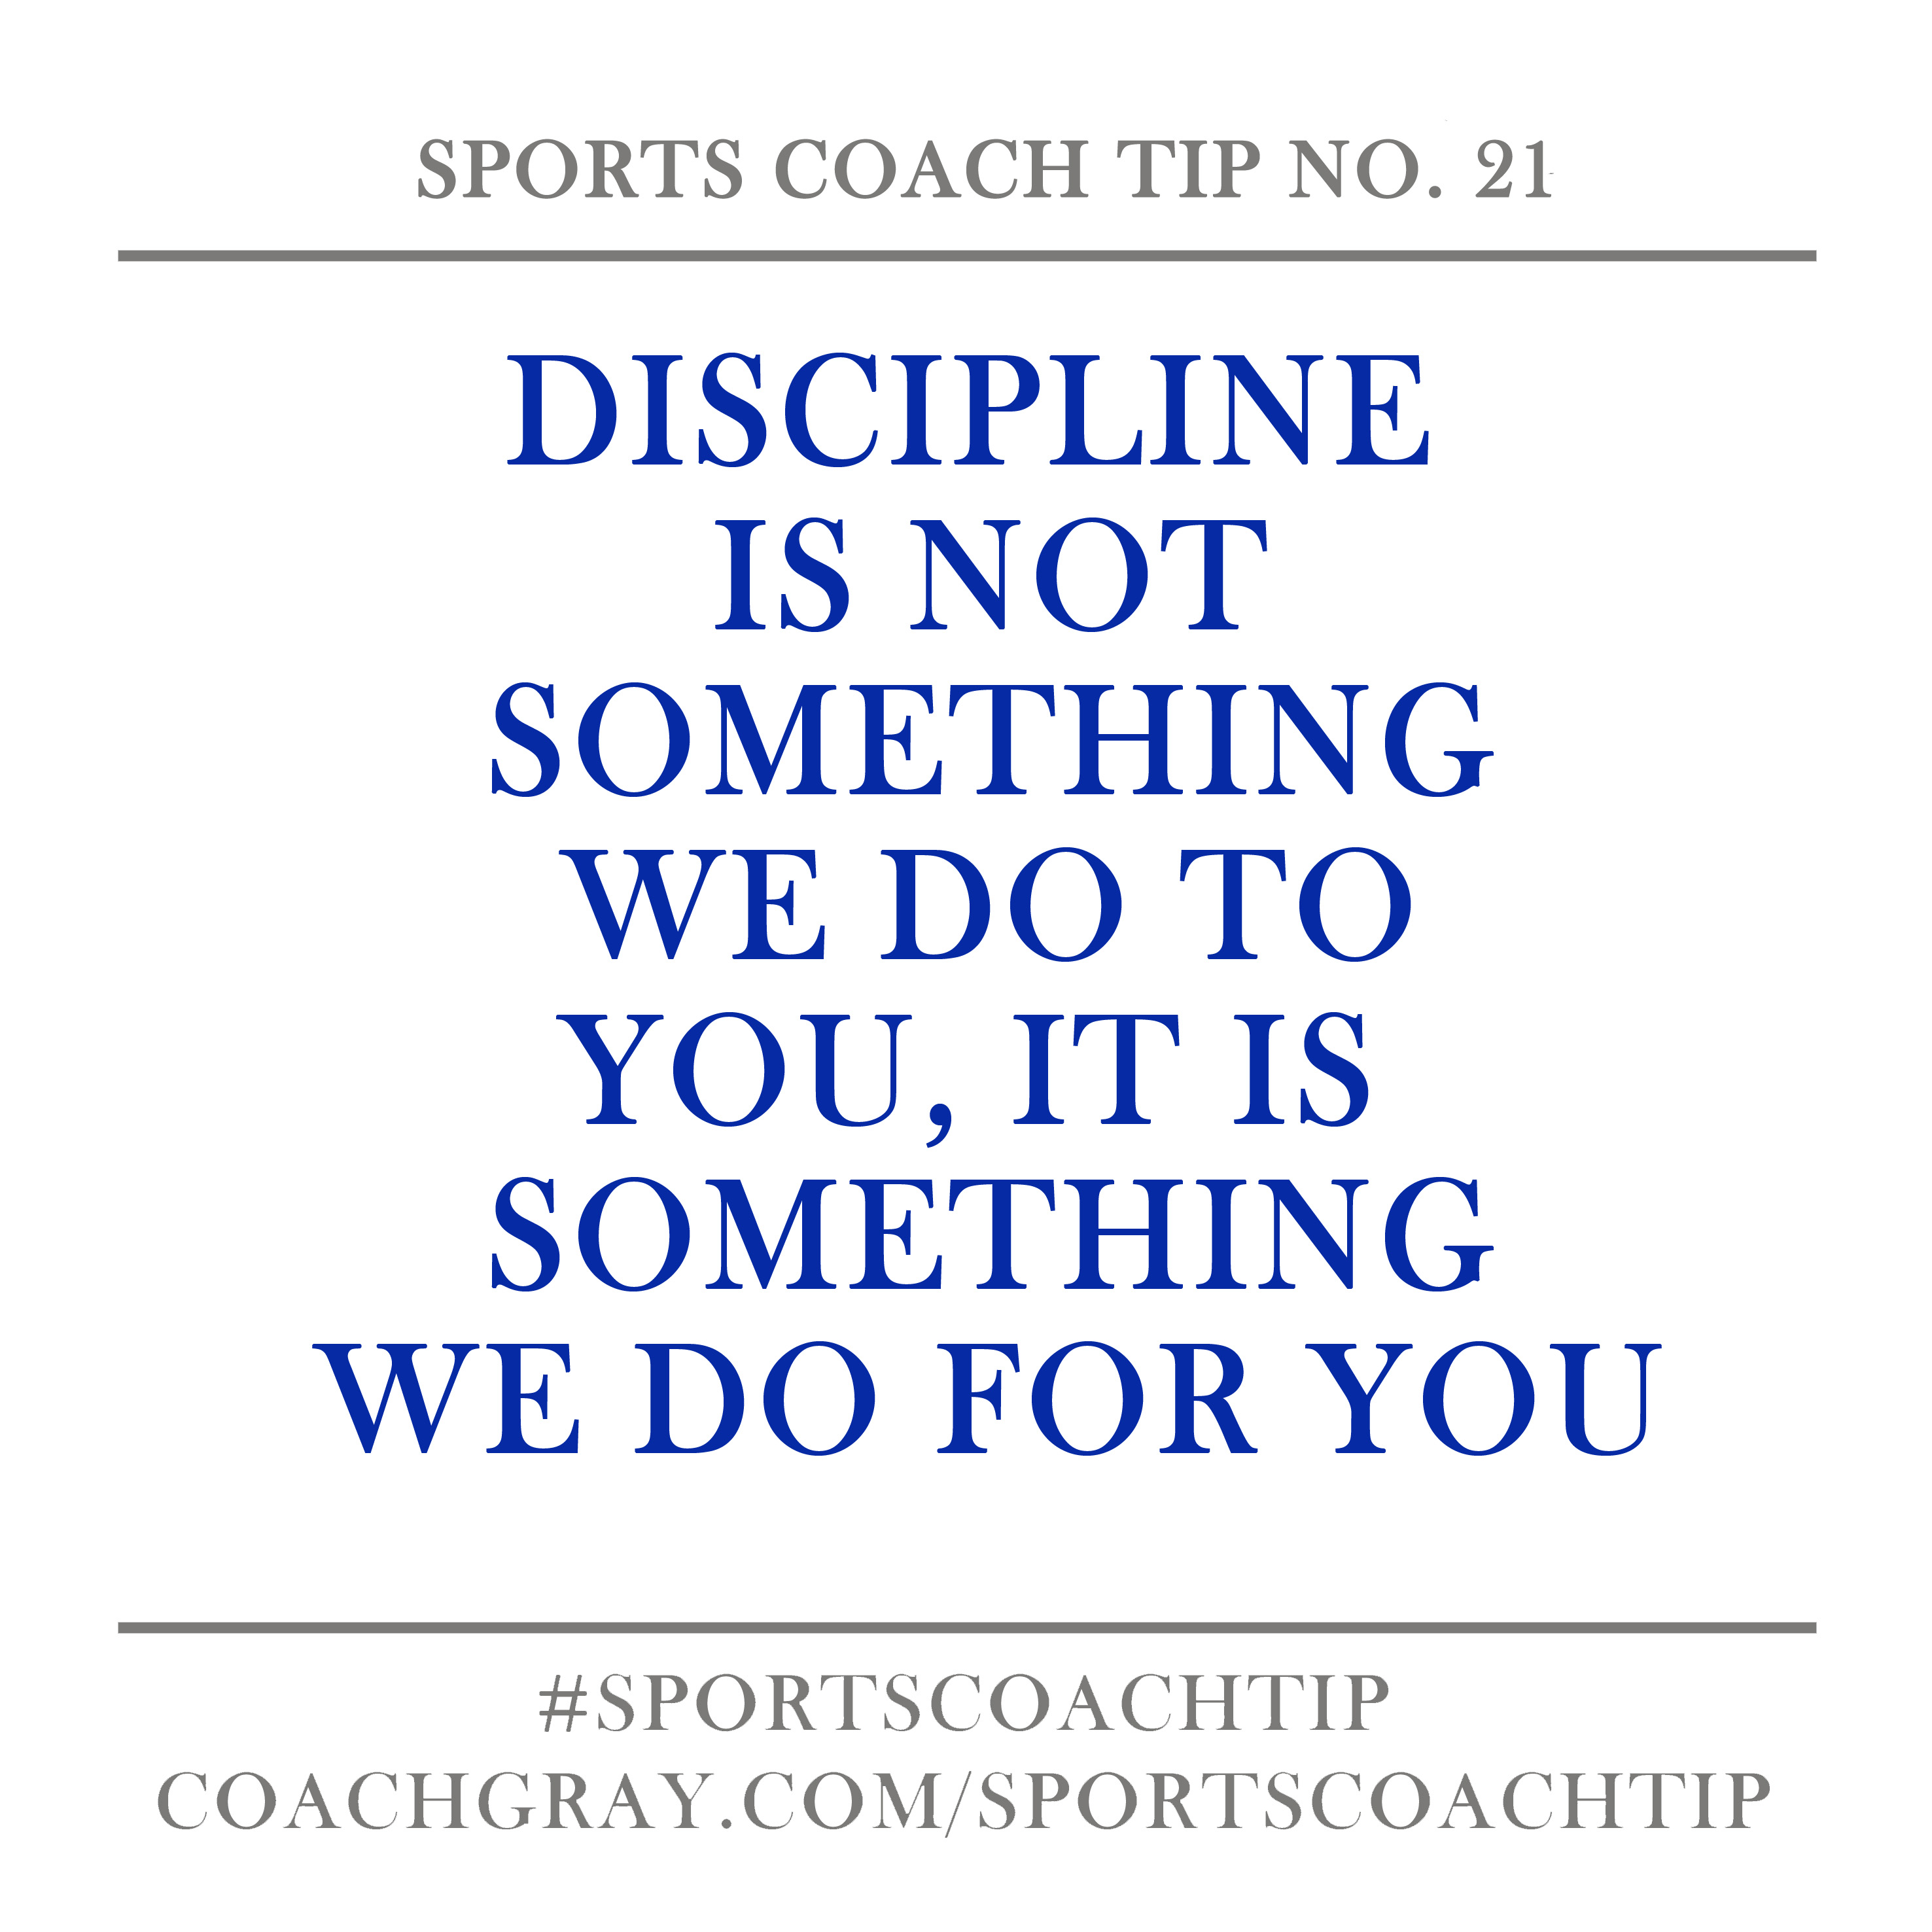 Discipline is not something we do to you, it is something we do for you.